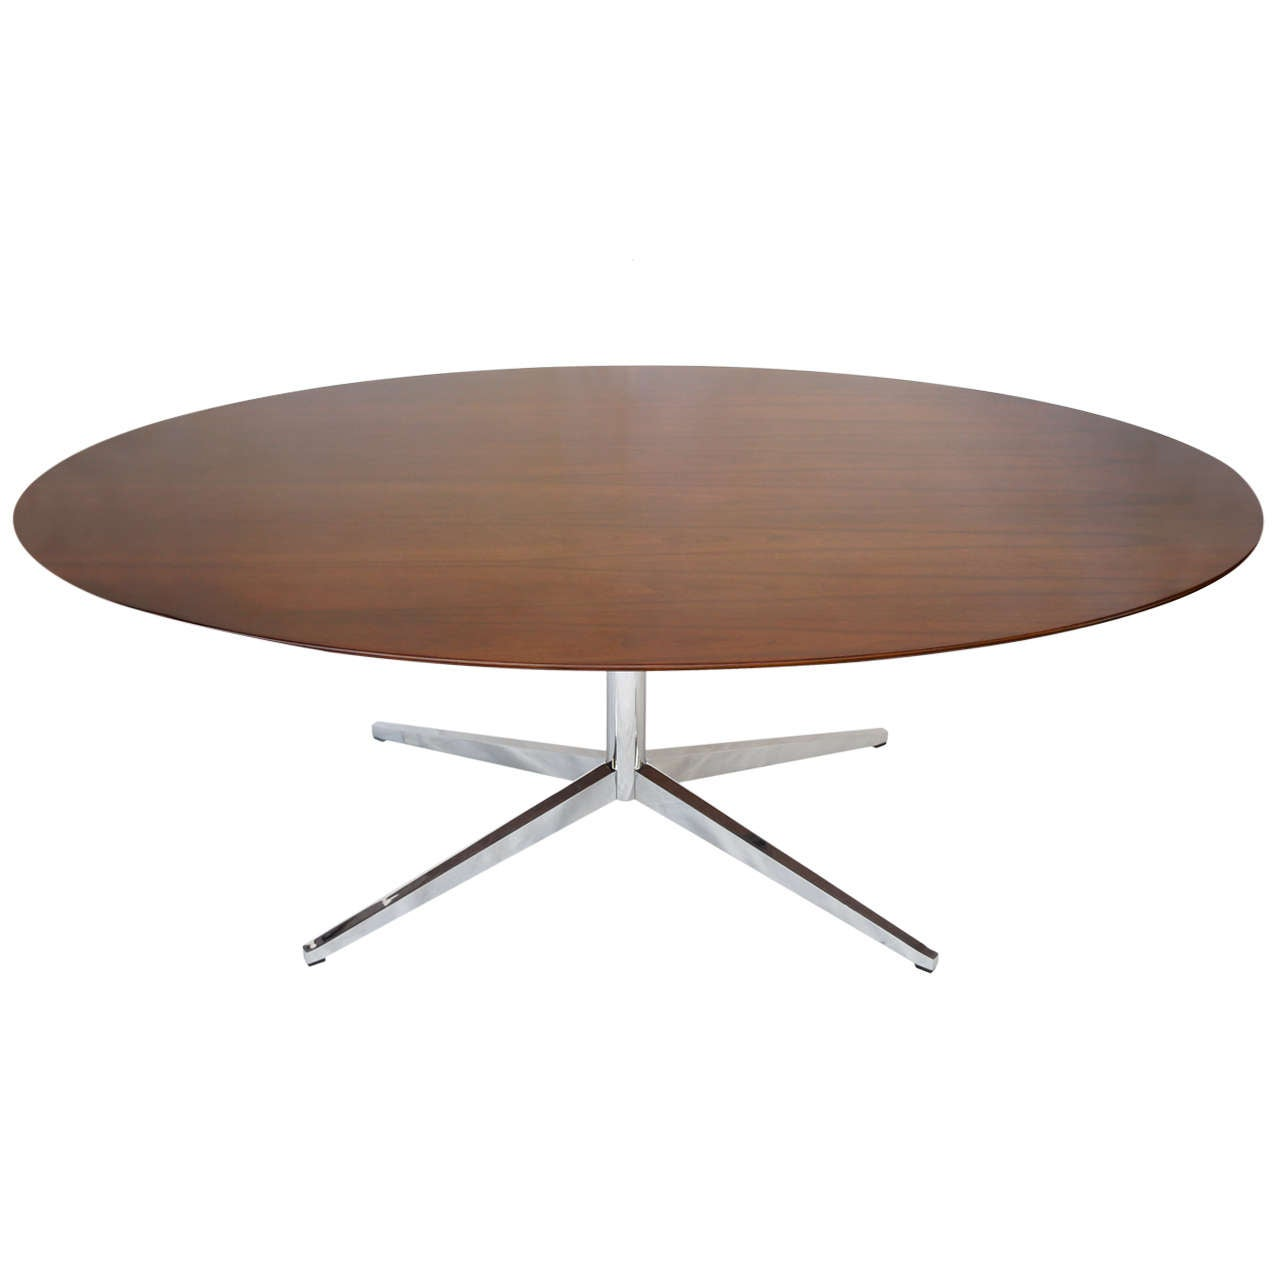 Oval conference table - 8 Foot Florence Knoll Oval Dining Table Desk Or Conference Table In Rosewood 1